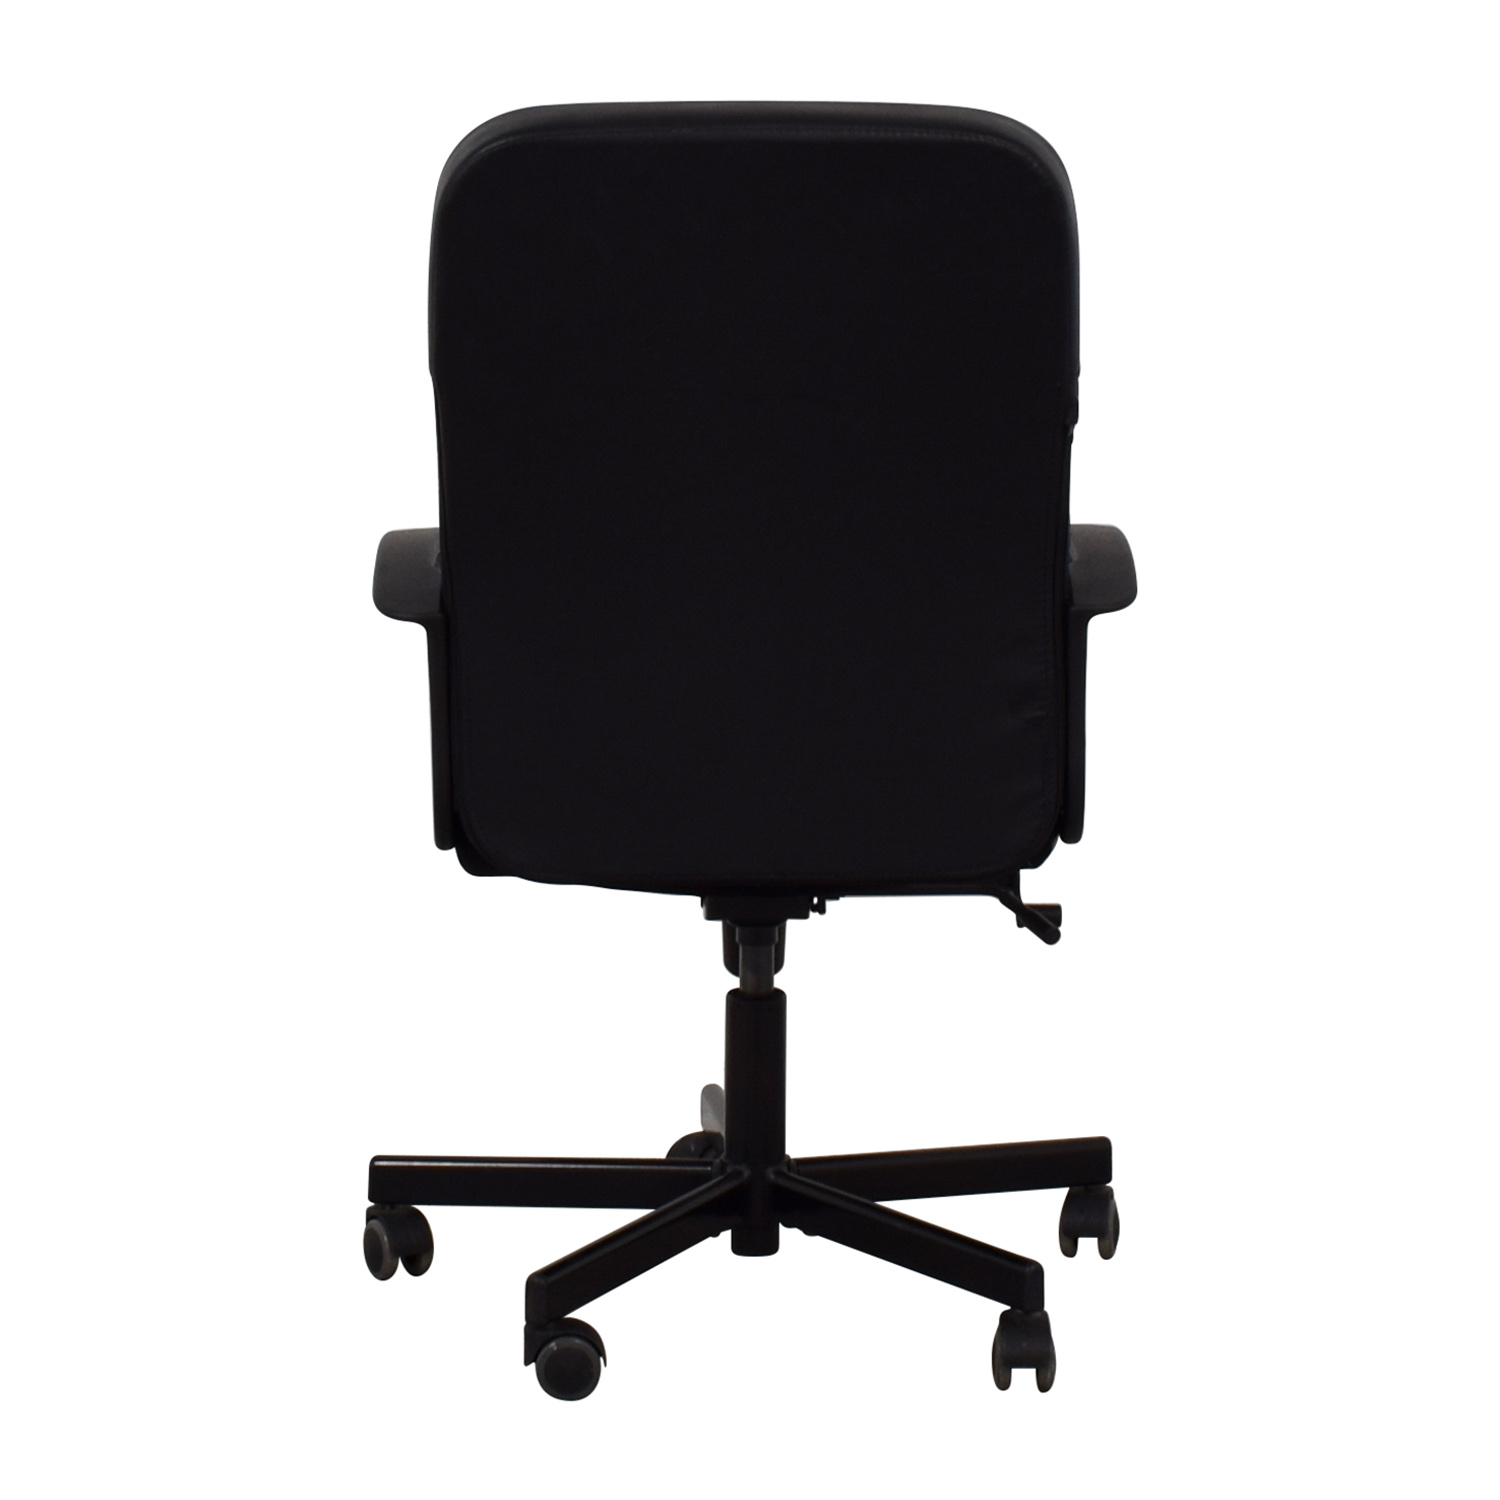 Ikea Black Chair 75 Off Ikea Ikea Black Office Chair Chairs